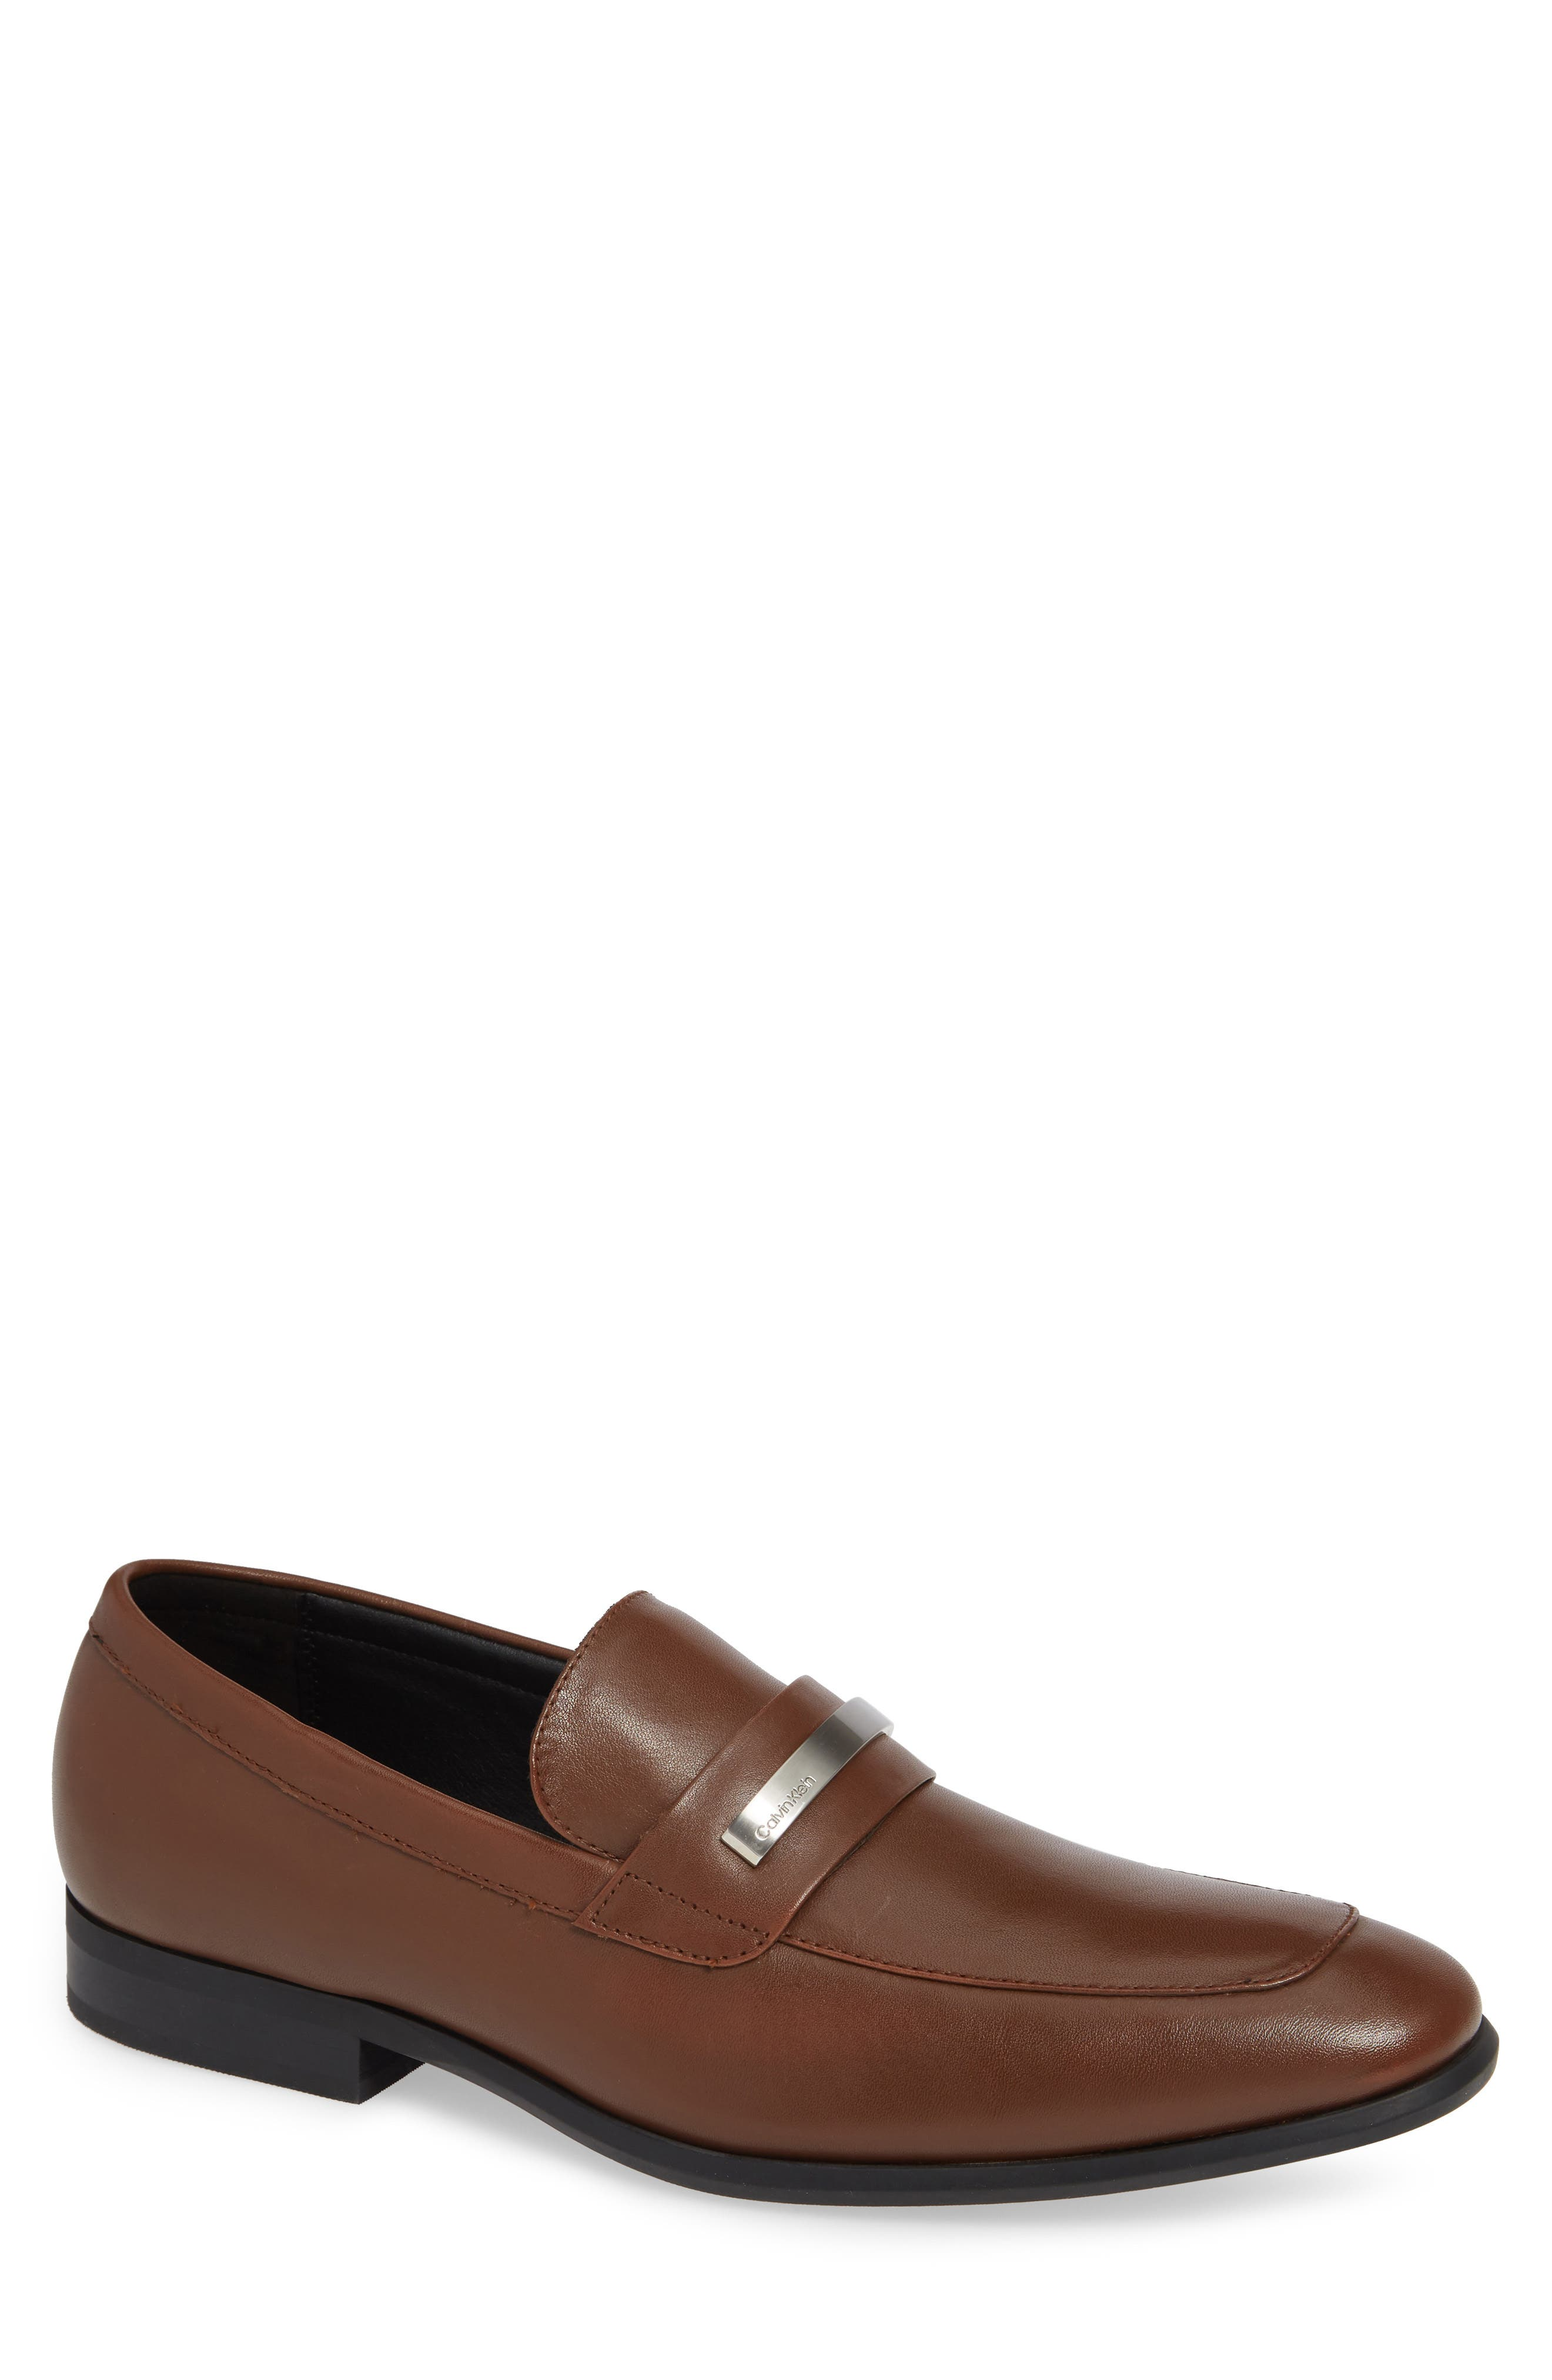 Leon Bit Loafer,                         Main,                         color, NEW TAN LEATHER